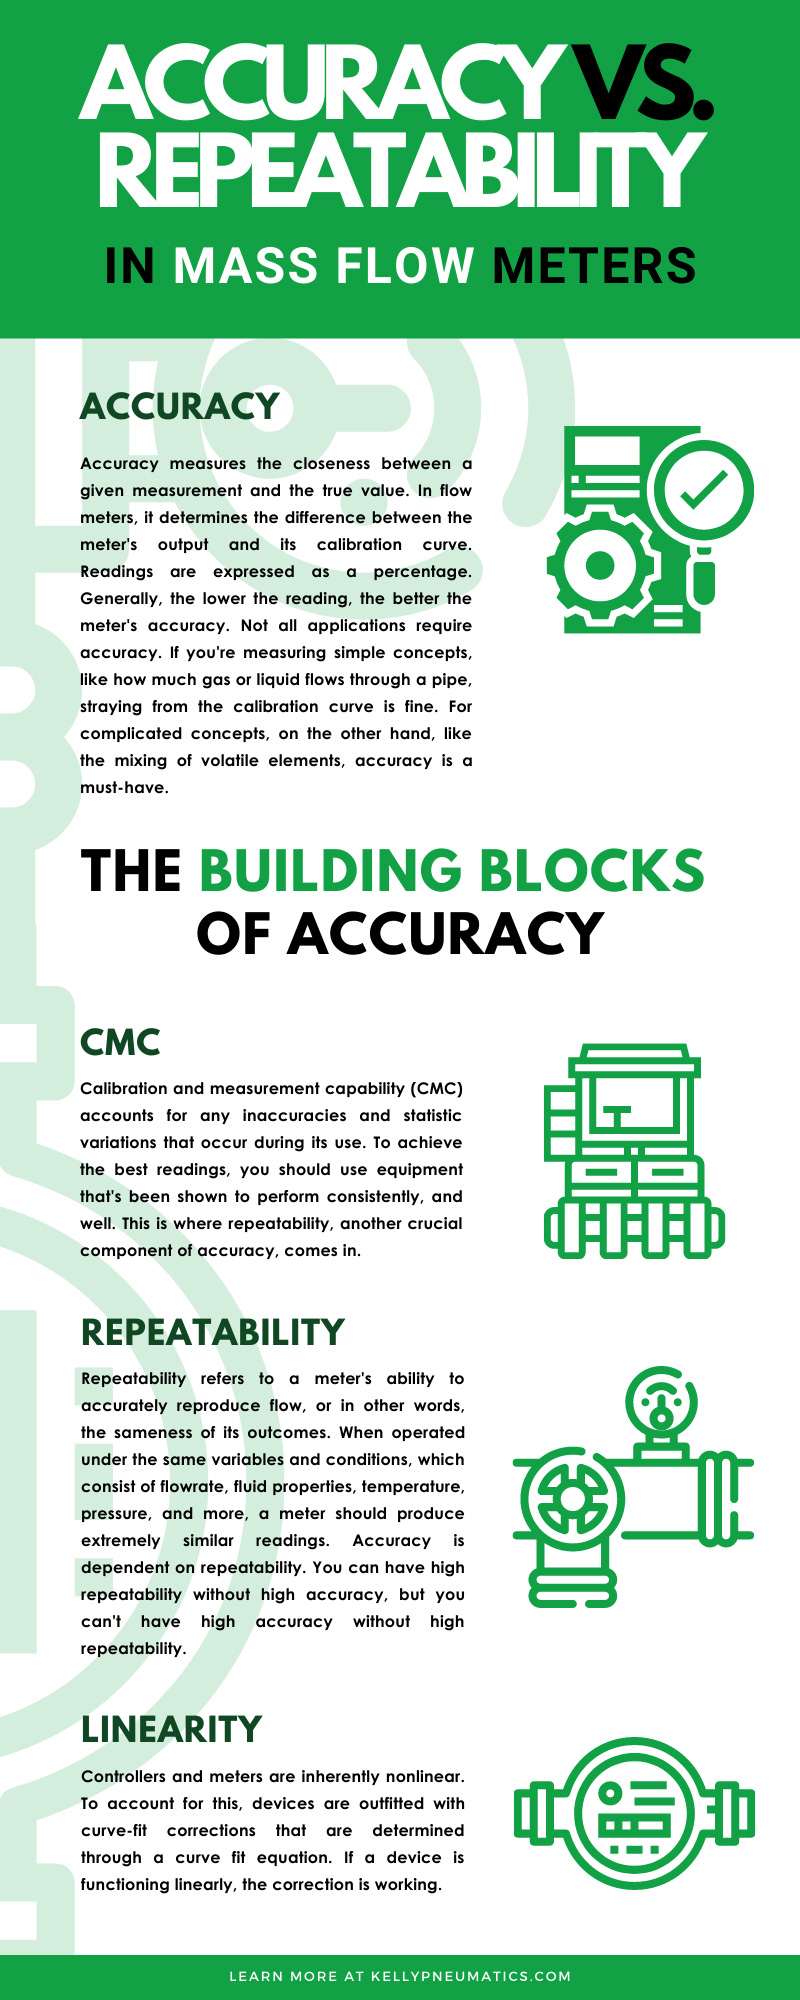 Accuracy vs. Repeatability in Mass Flow Meters